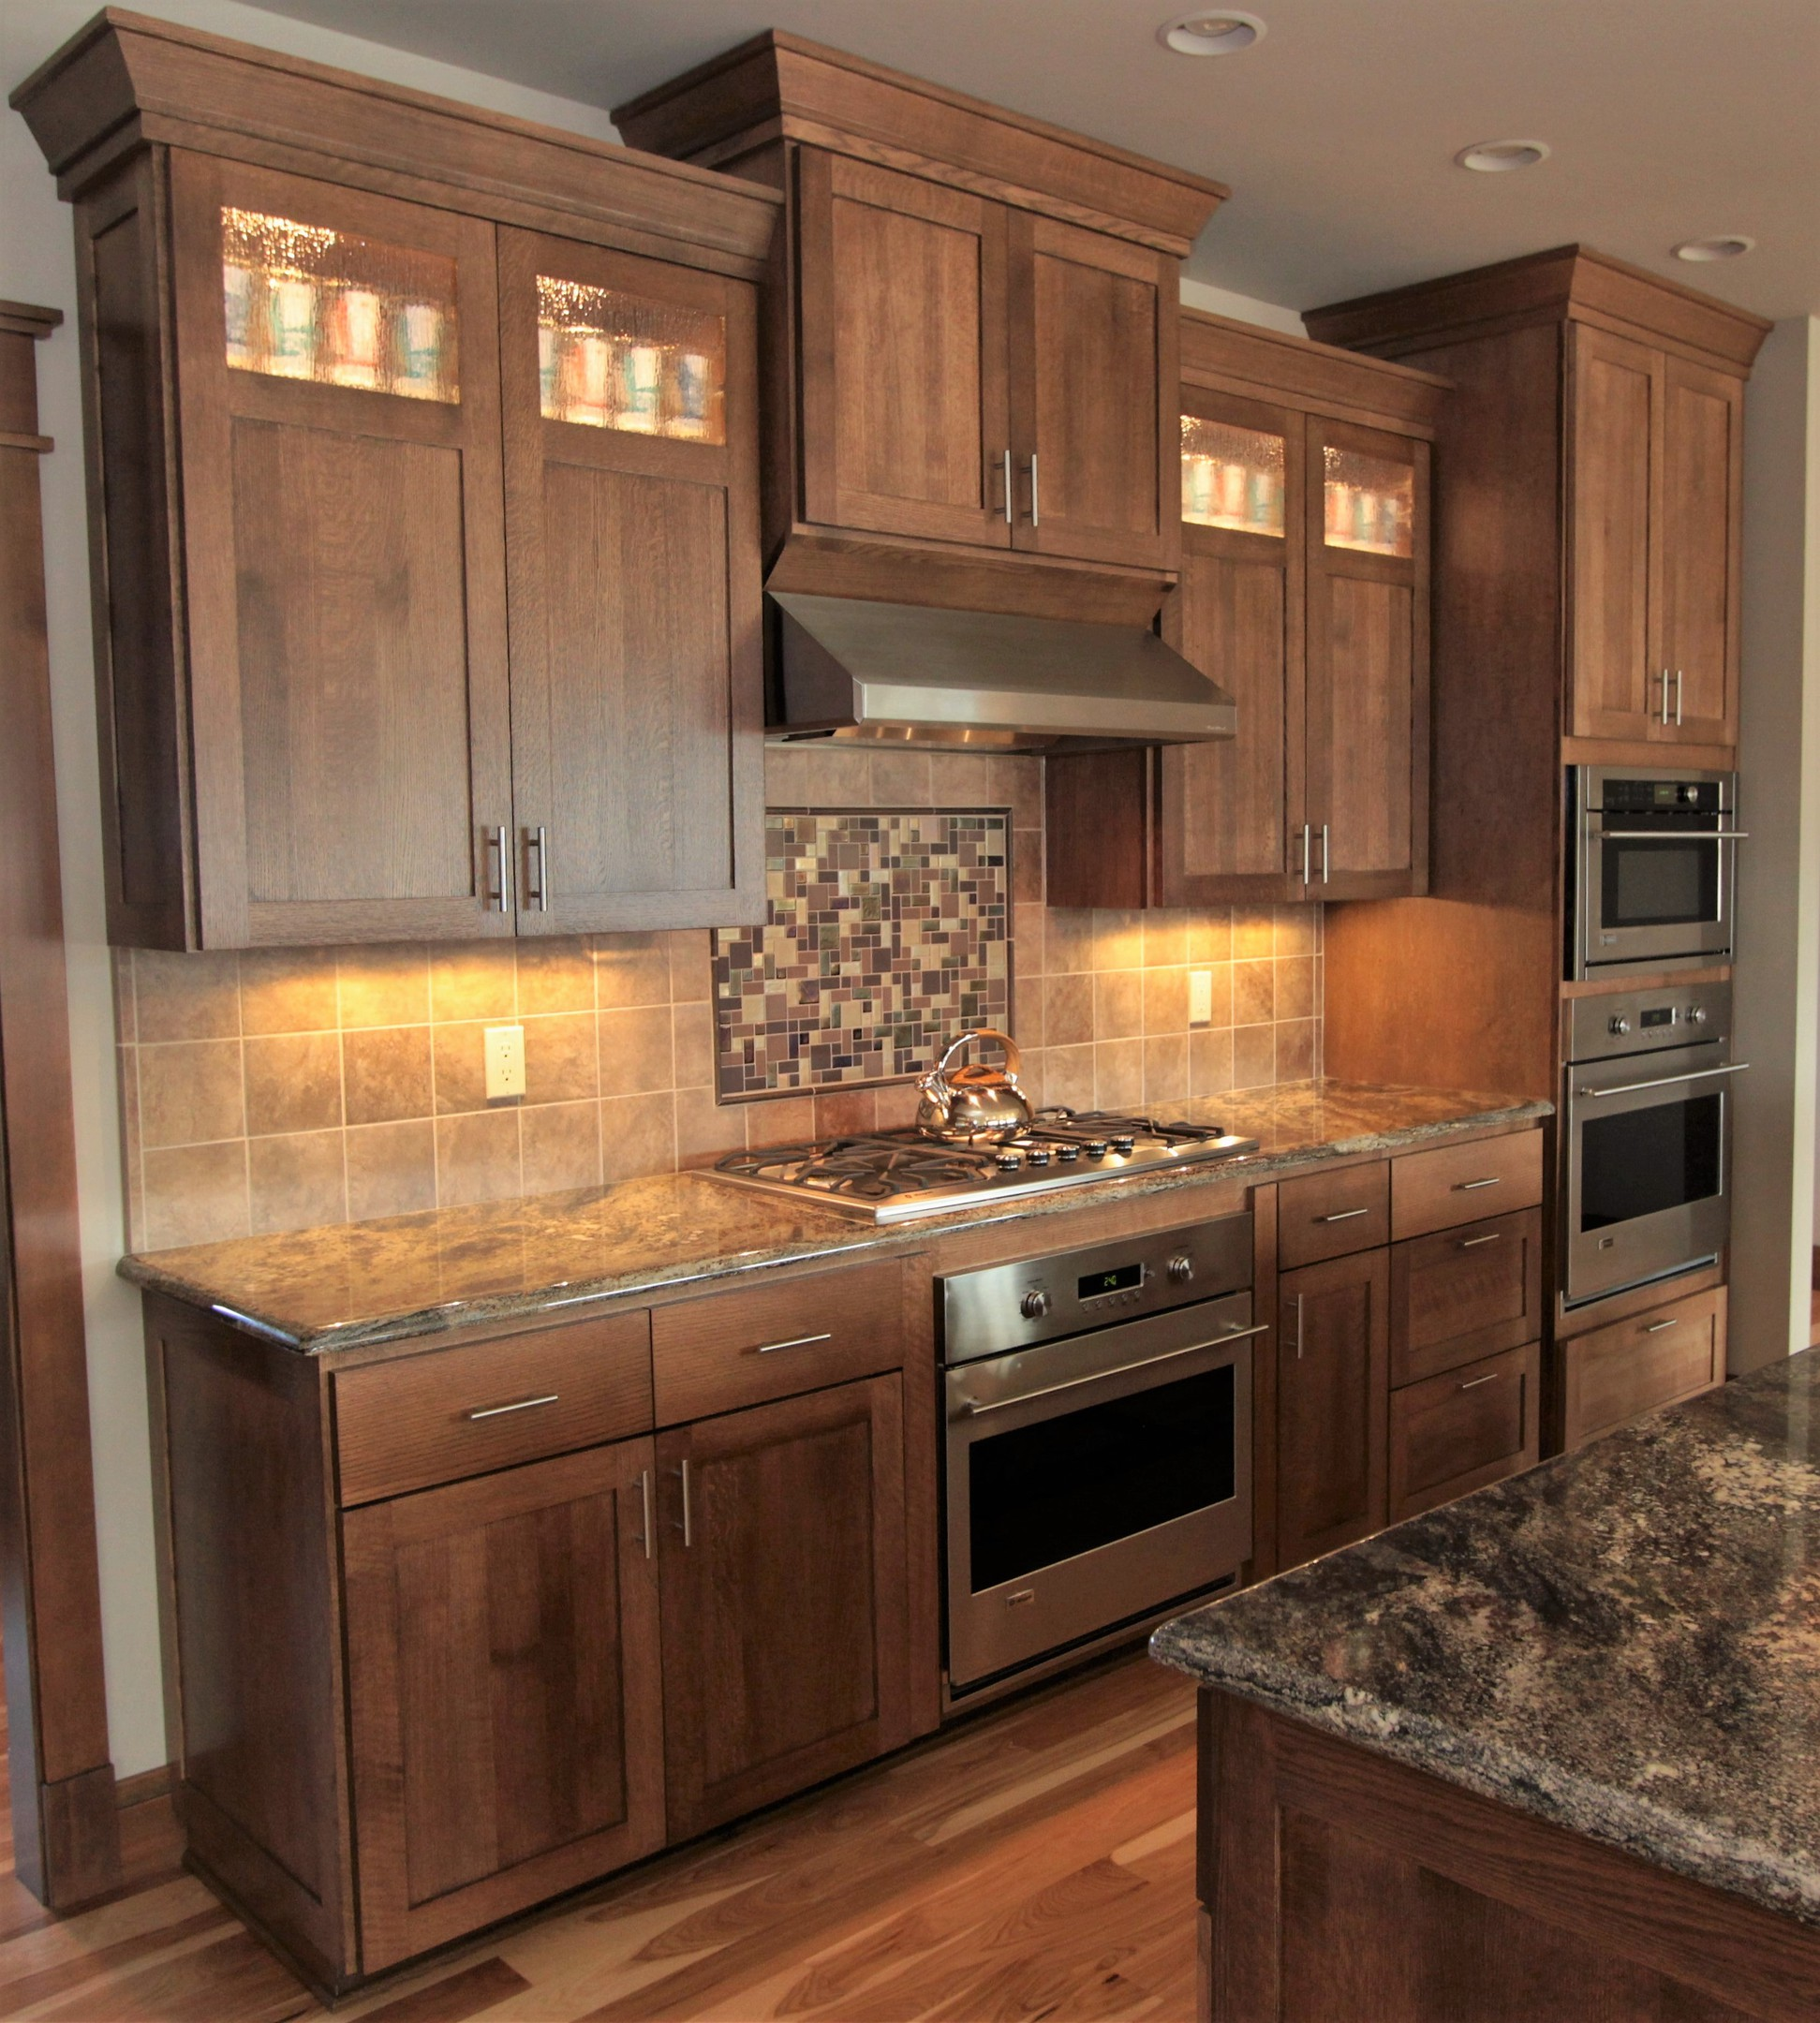 Affordable custom cabinets showroom for Shaker style kitchen hoods